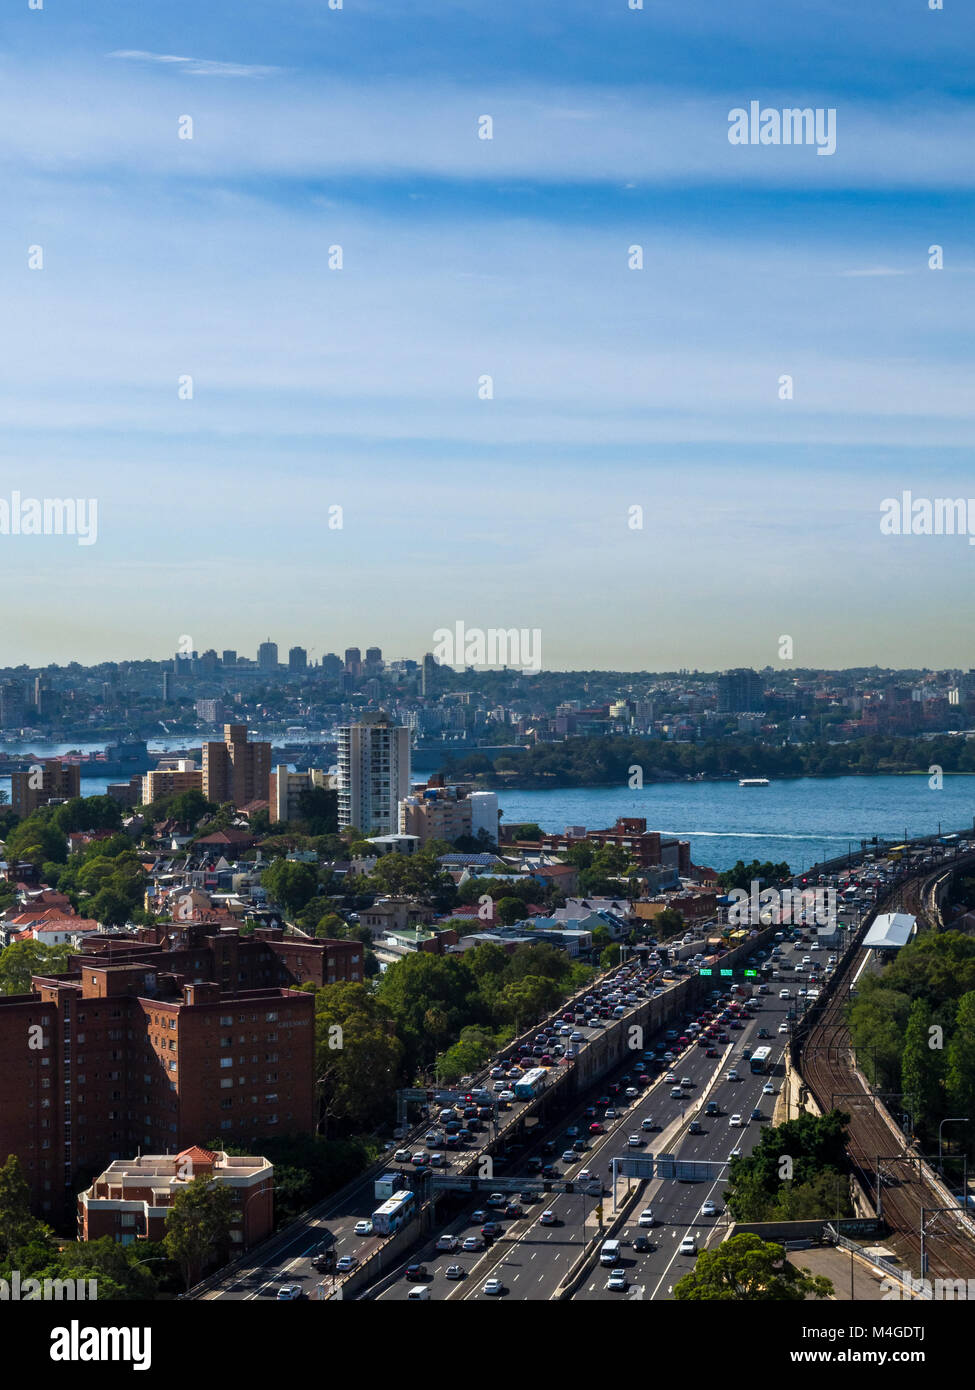 Traffic building up on Cahill Expressway ahead of crossing Sydney Harbour Bridge, Sydney, NSW, Australia - Stock Image